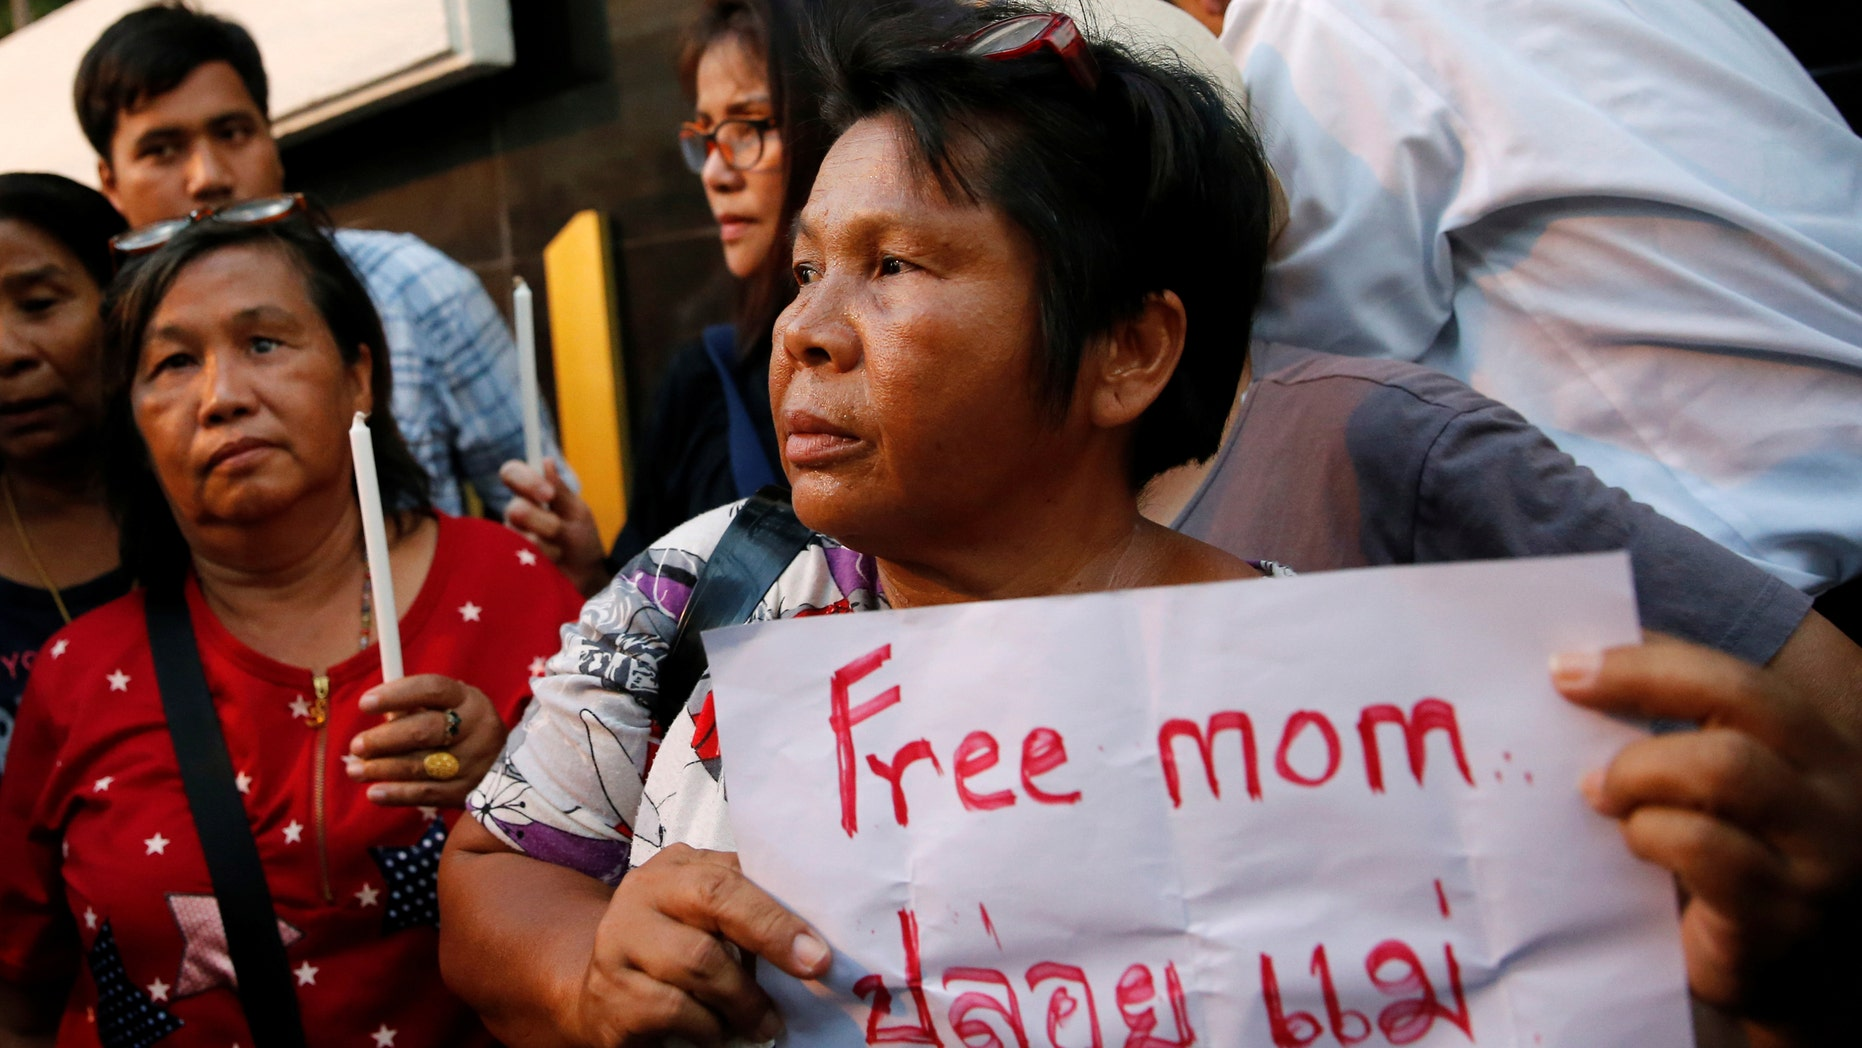 People take part in a demonstration asking for the release of Patnaree Chankij, mother of anti-junta activist Sirawith Seritiwat, in Bangkok, Thailand May 7, 2016. (REUTERS/Jorge Silva)